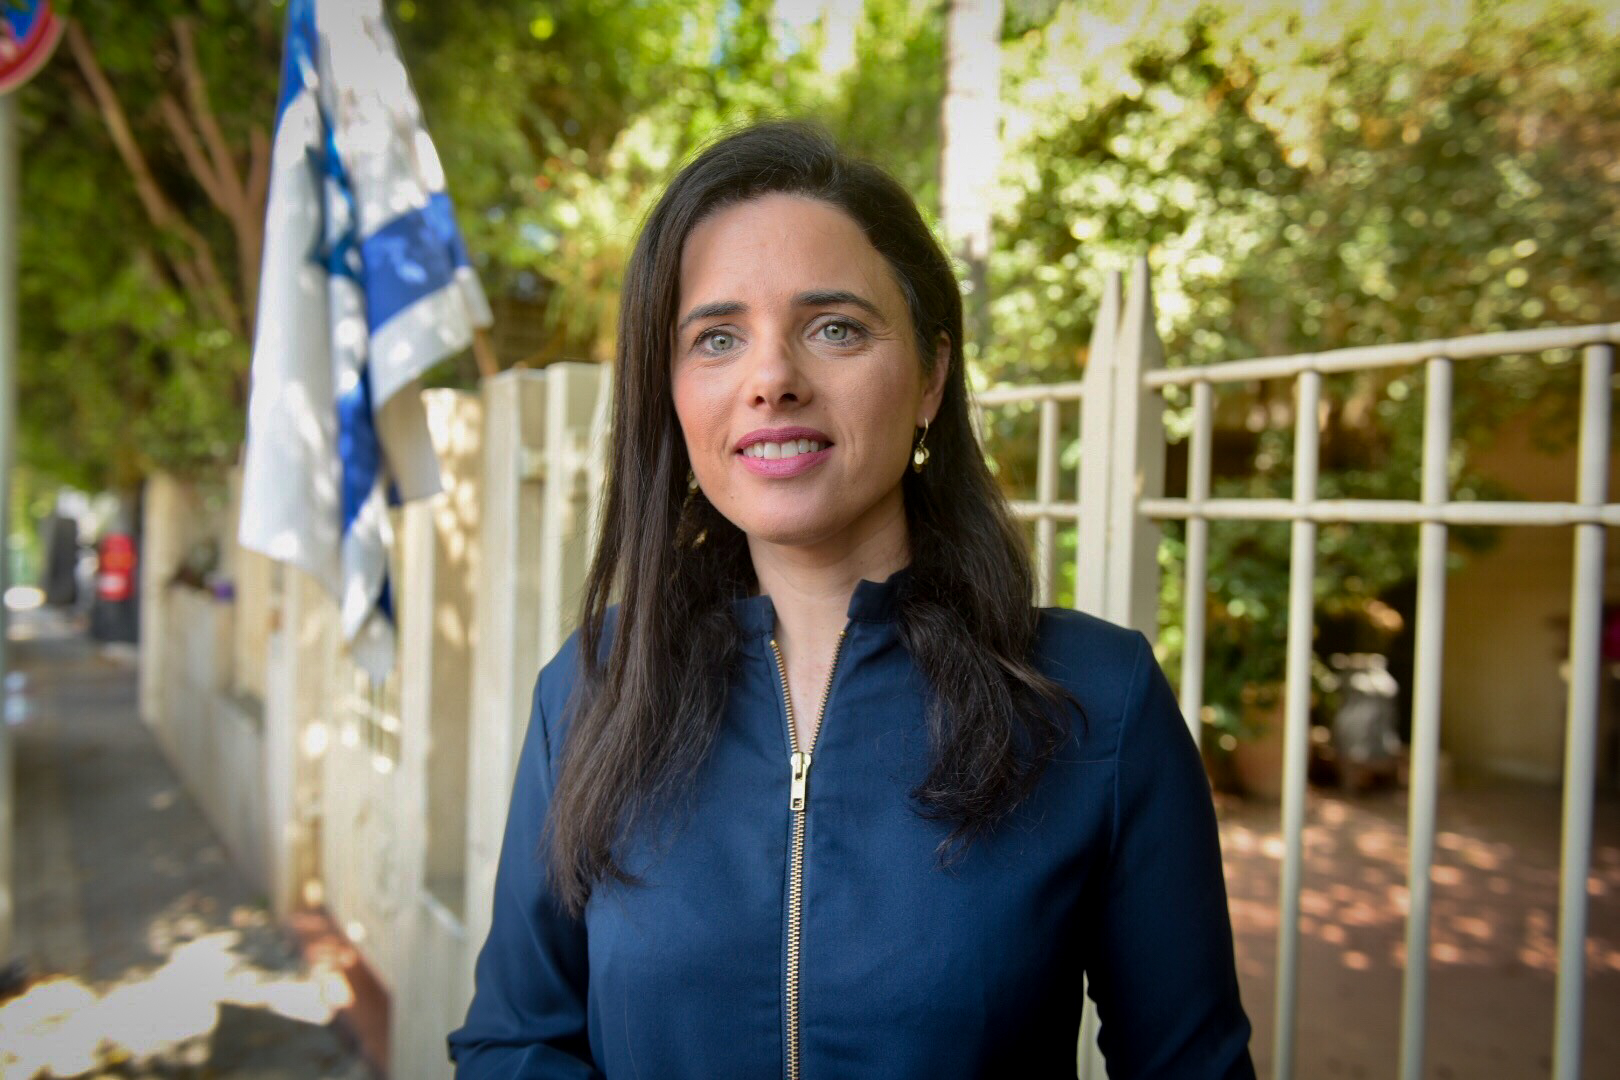 Pleading for right-wing unity, Shaked backs off key demand in merger